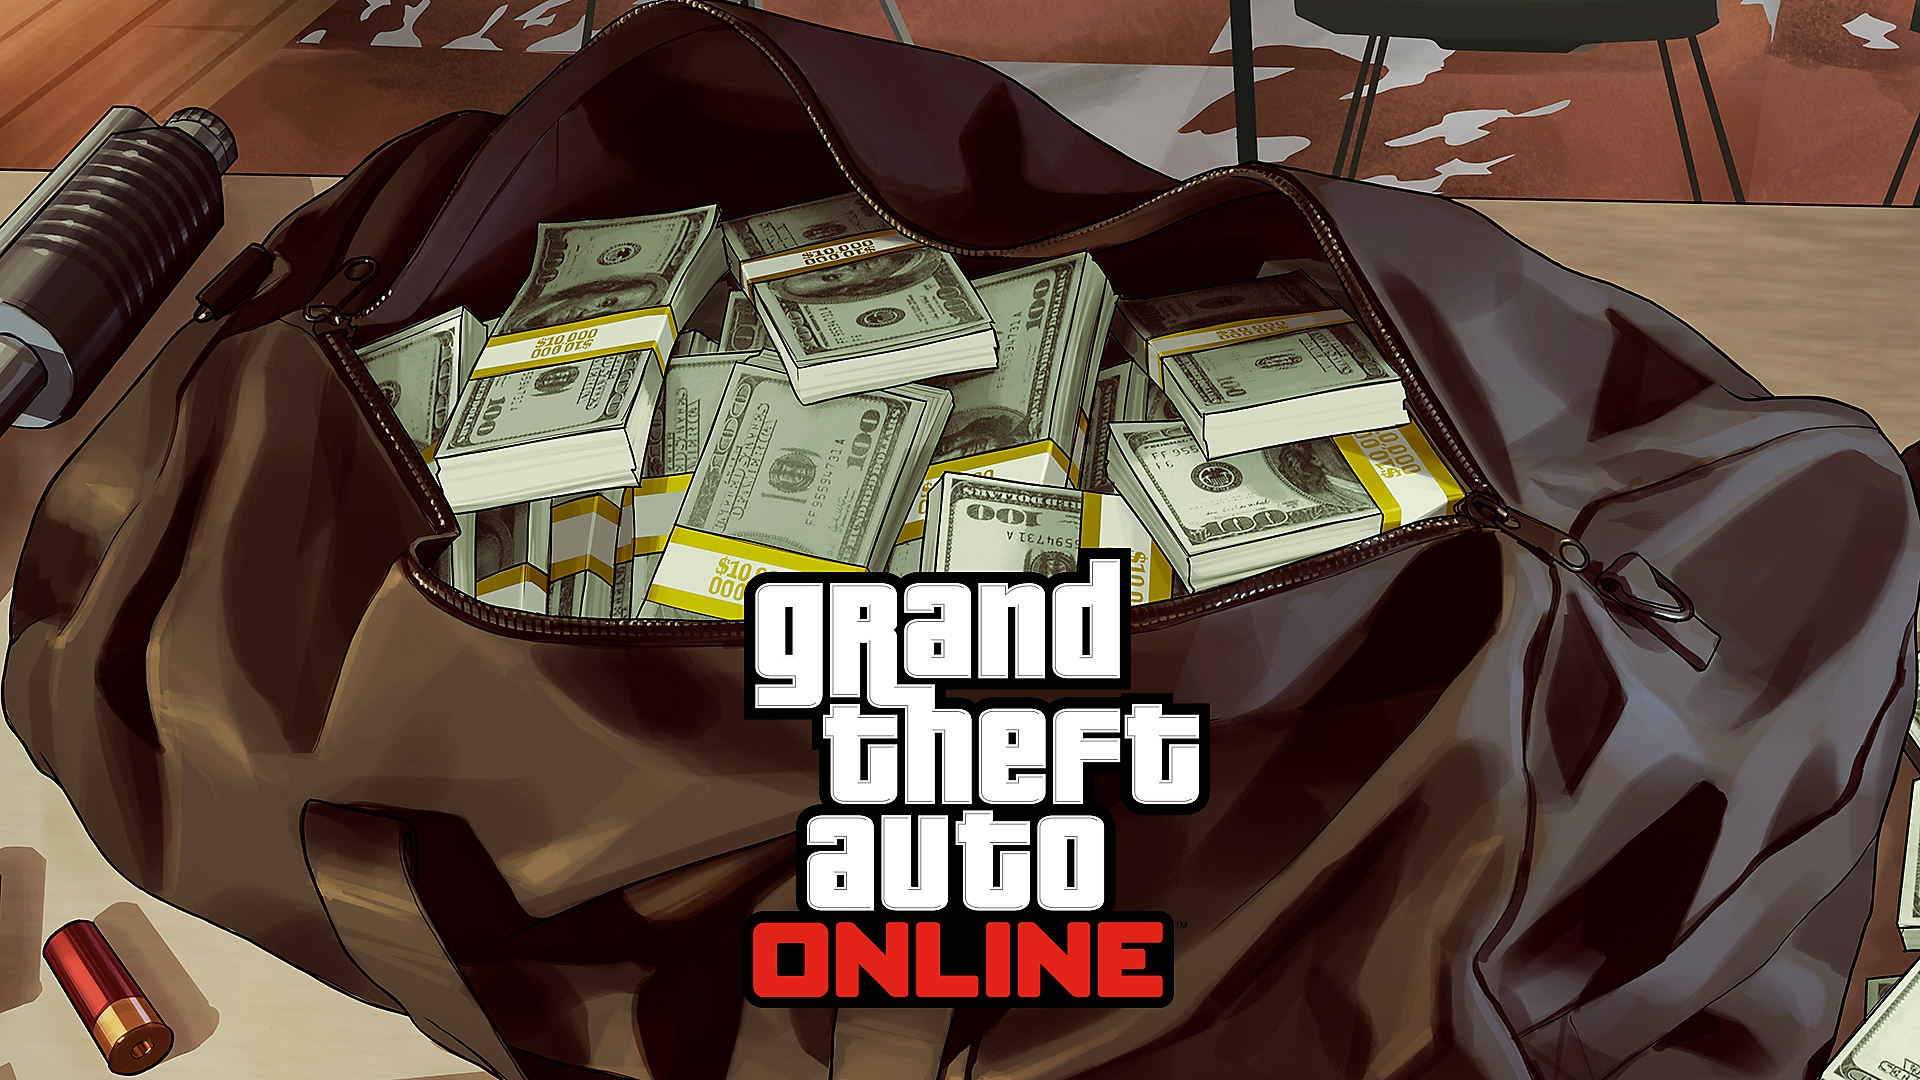 Grand Theft Auto Online - GTA$1M Offer Image